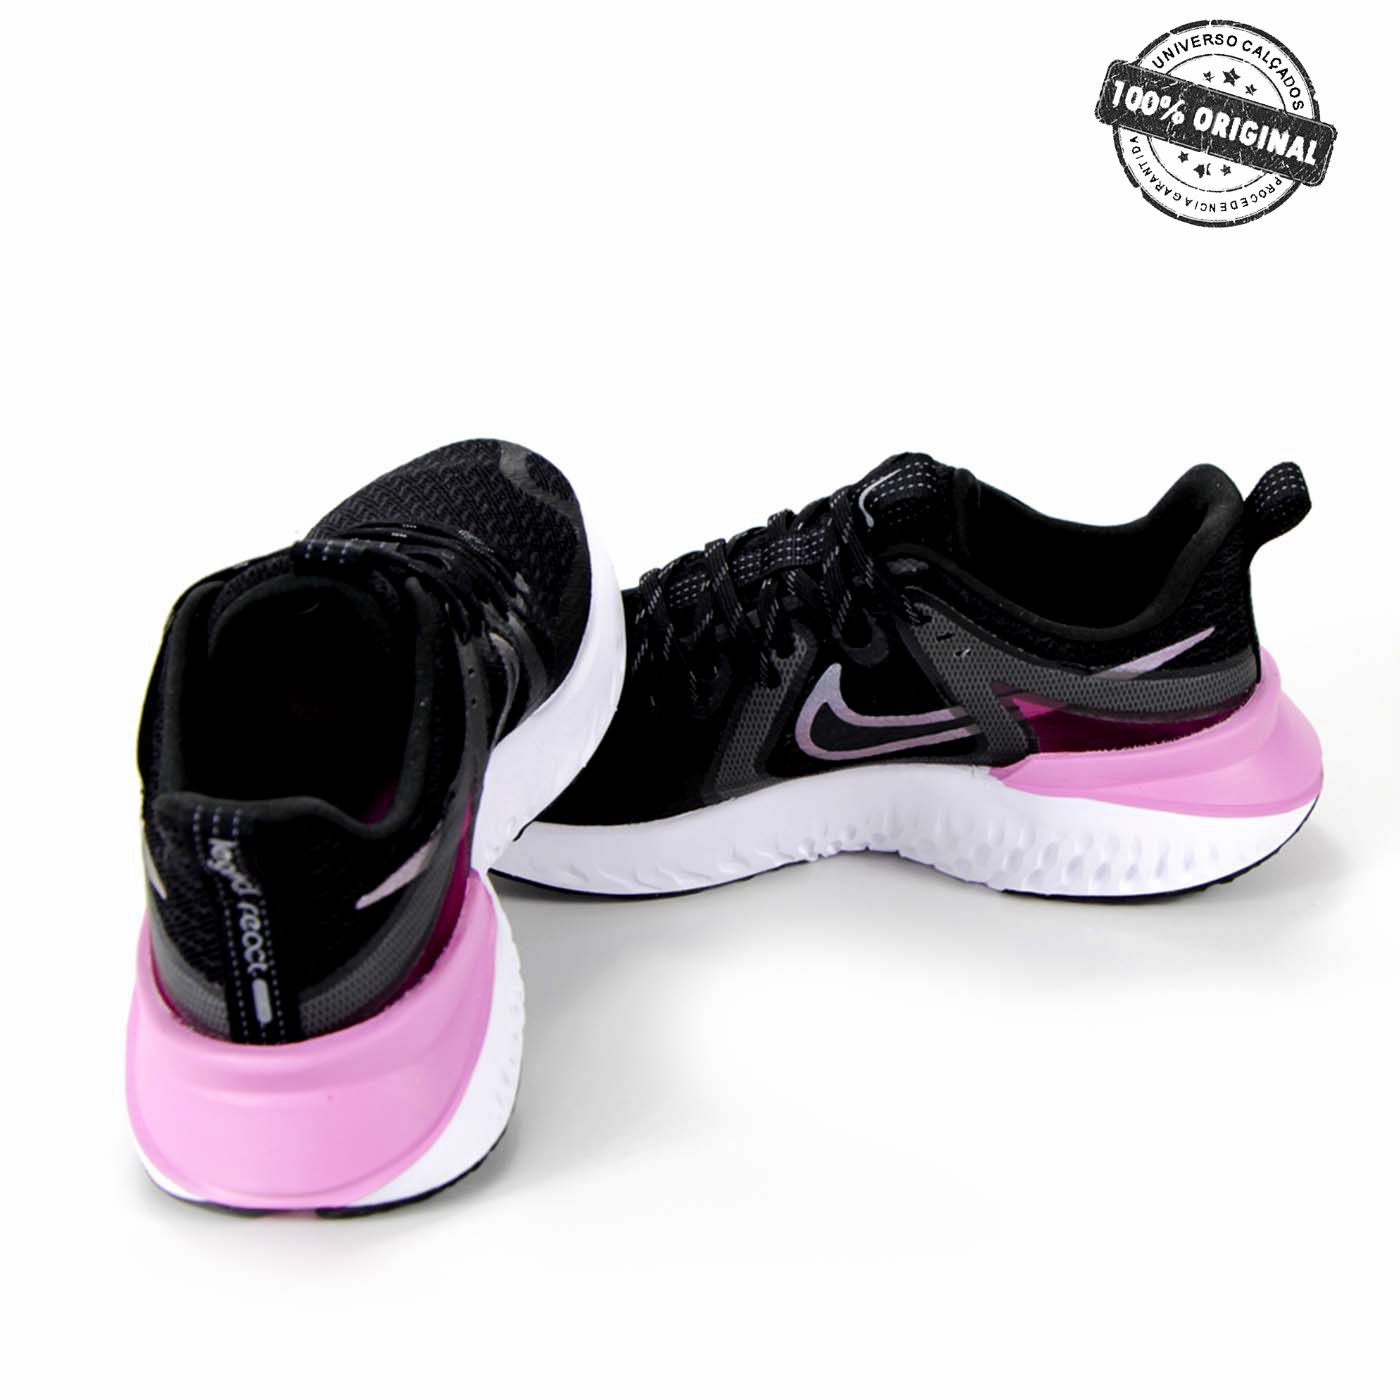 TENIS NIKE WMNS LEGEND REACT 2 - AT1369